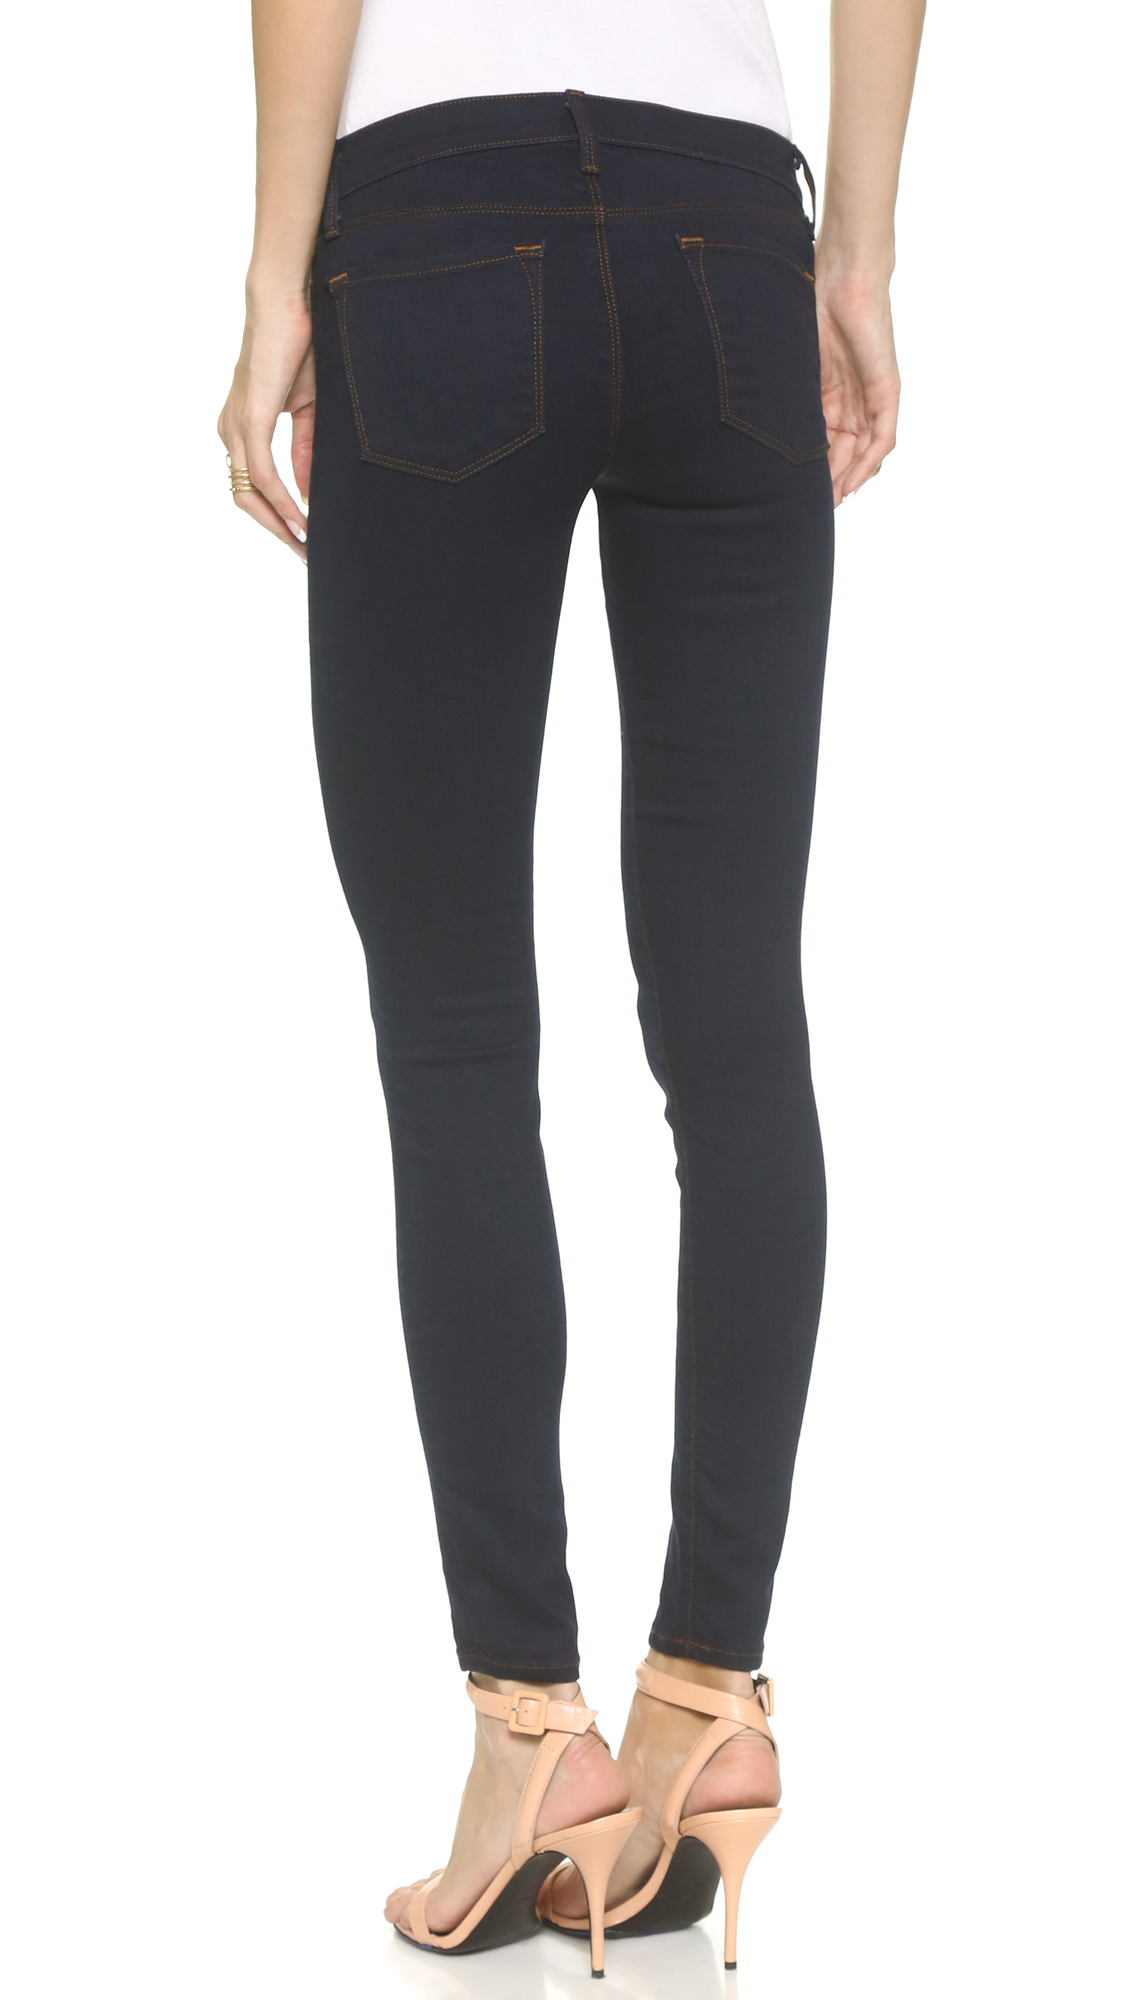 J brand 910 Low Rise Skinny Jeans in Blue